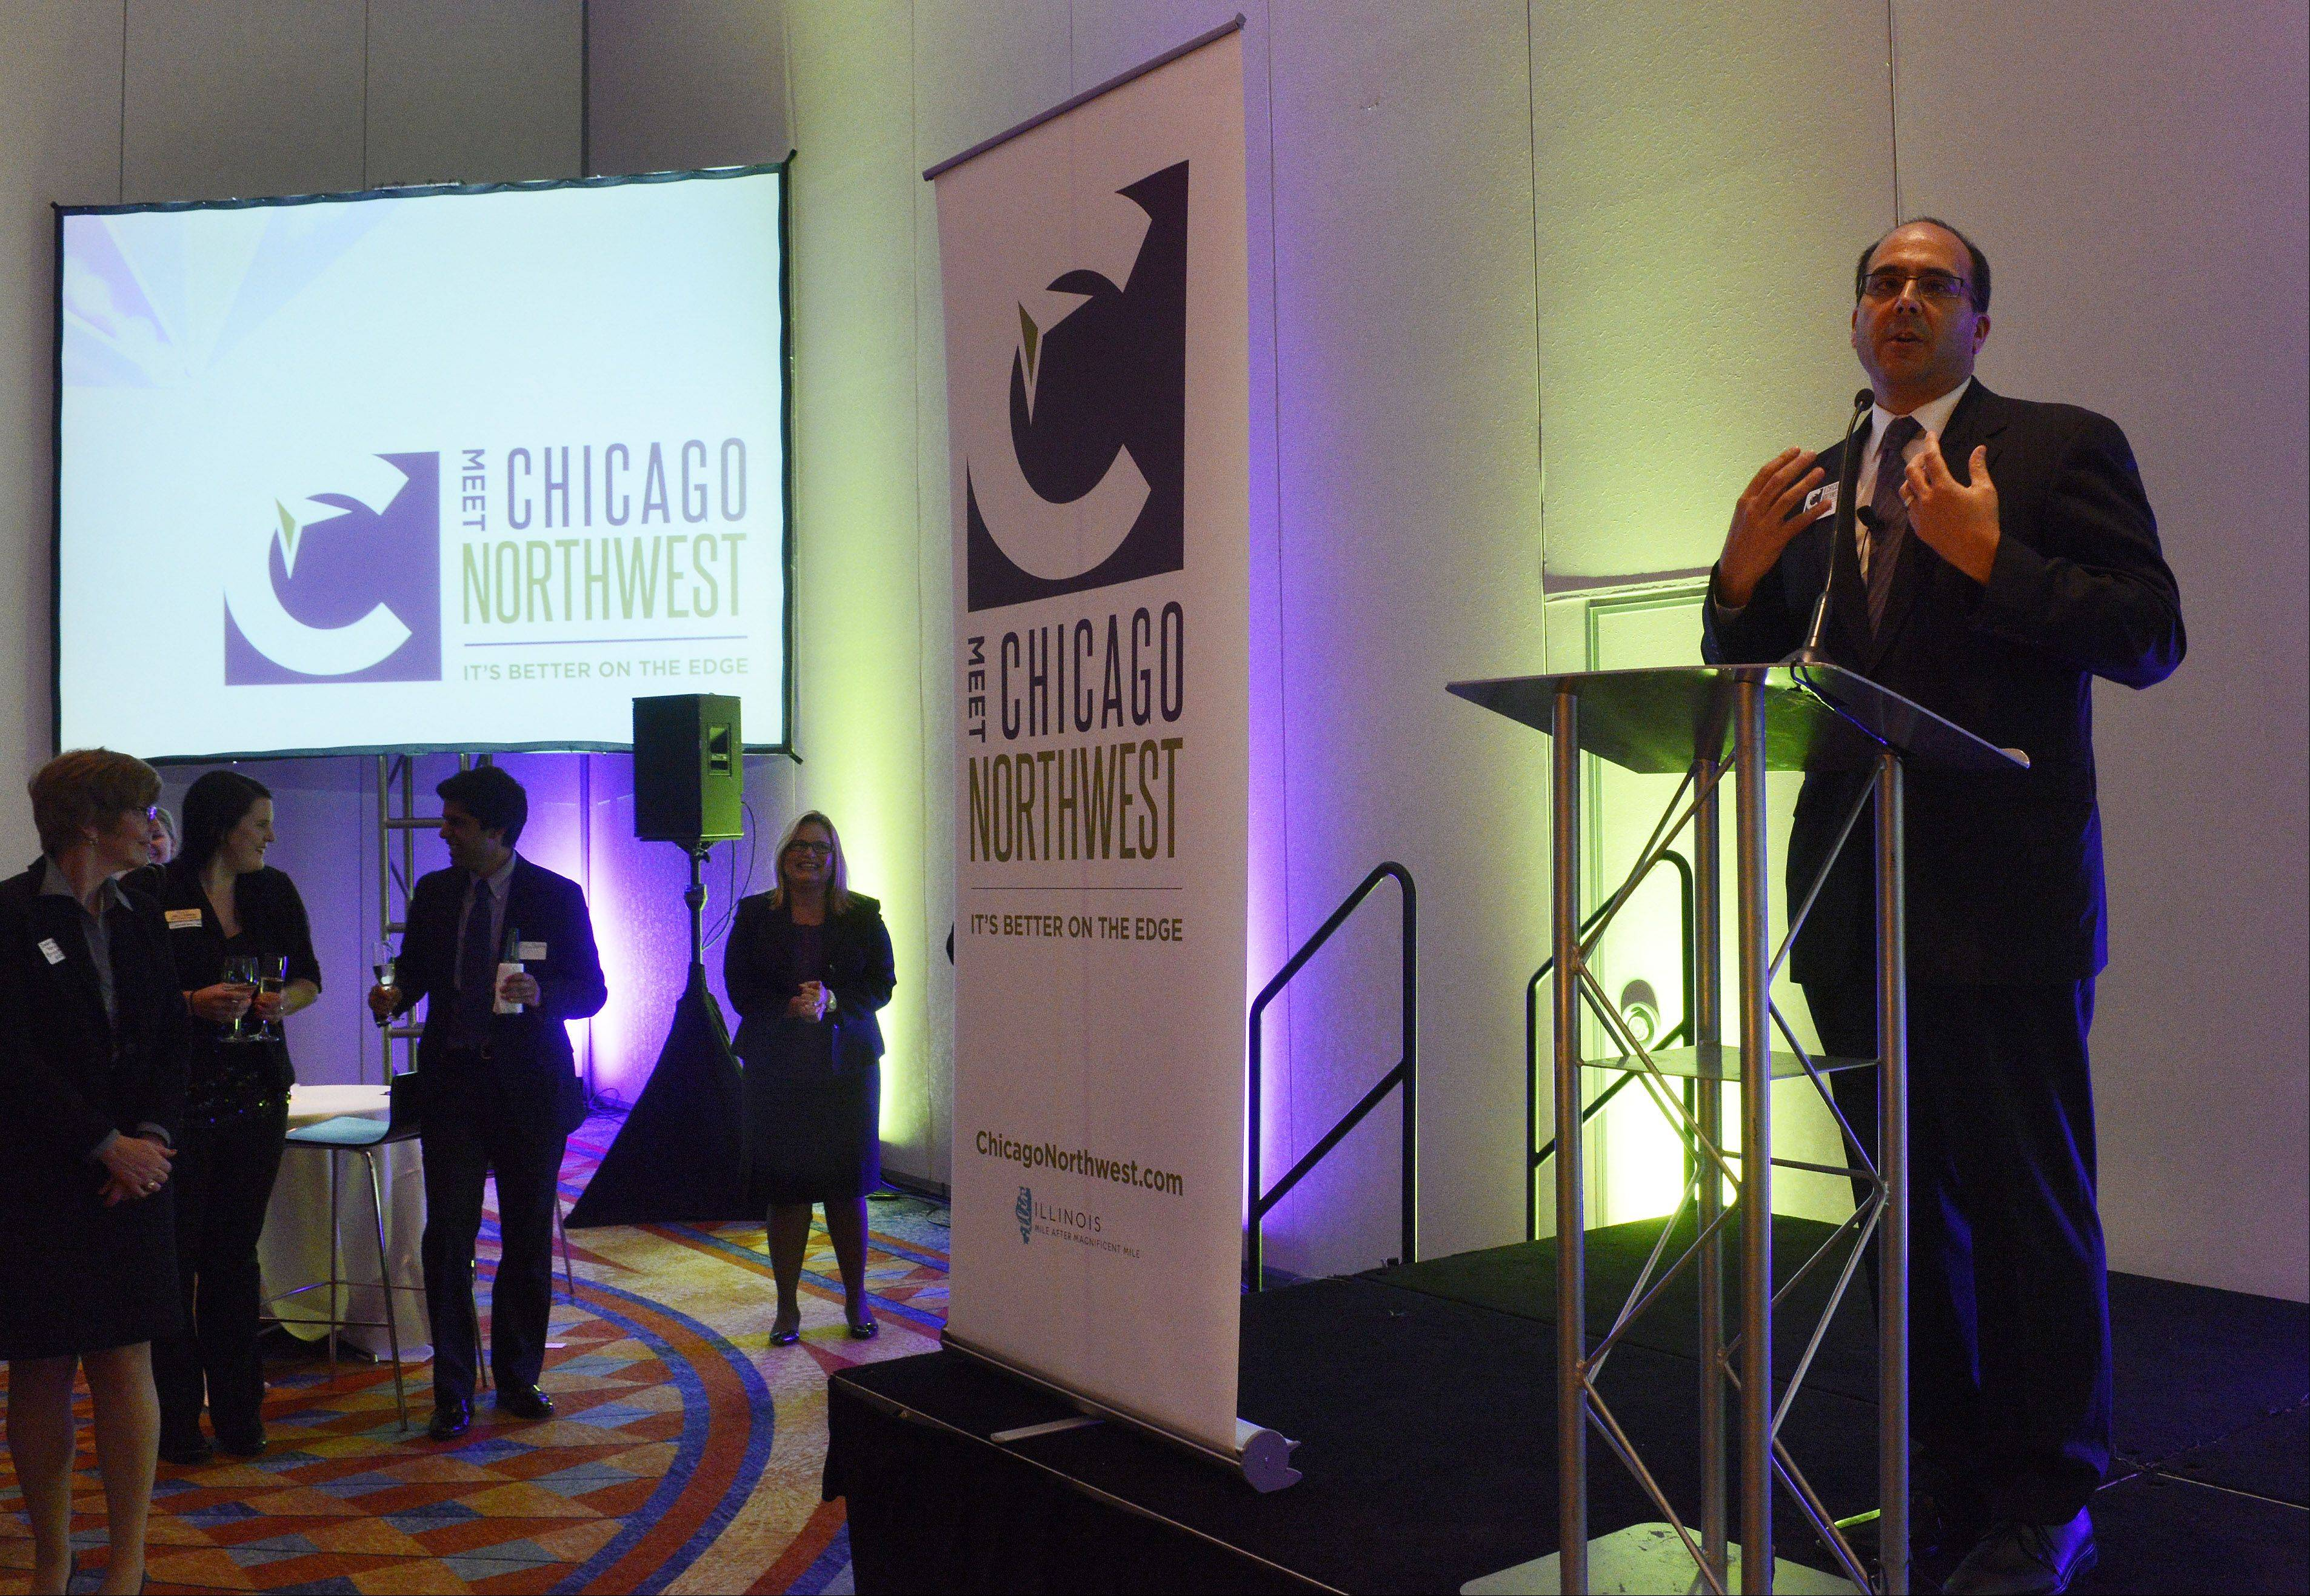 Dave Parulo, president of Meet Chicago Northwest, speaks Wednesday during the unveiling of the organization's new name and logo at a reception at the Renaissance Schaumburg Convention Center Hotel.